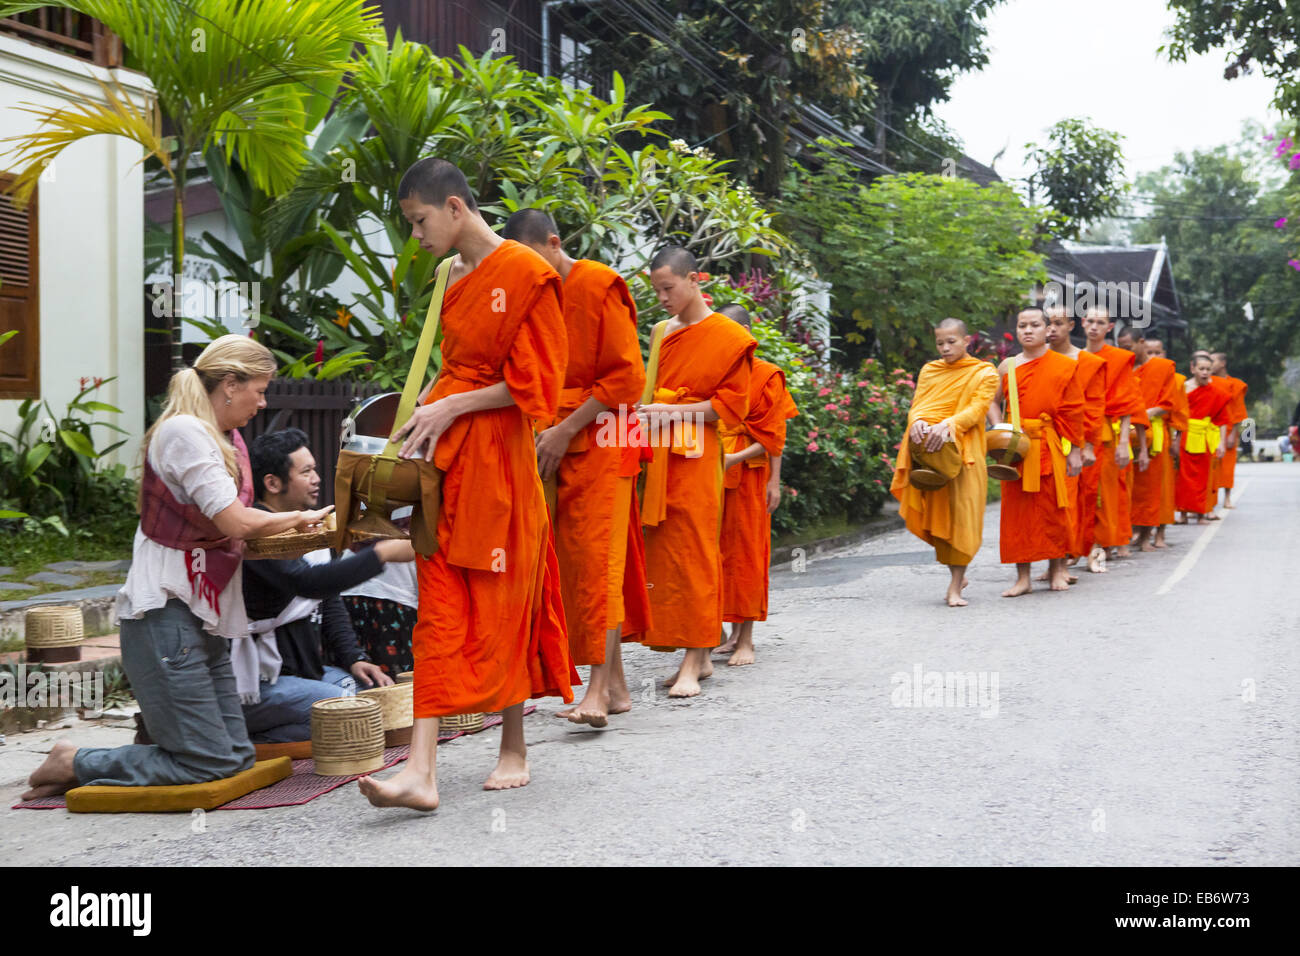 Alms giving ceremony in Luang Prabang, Laos. Stock Photo